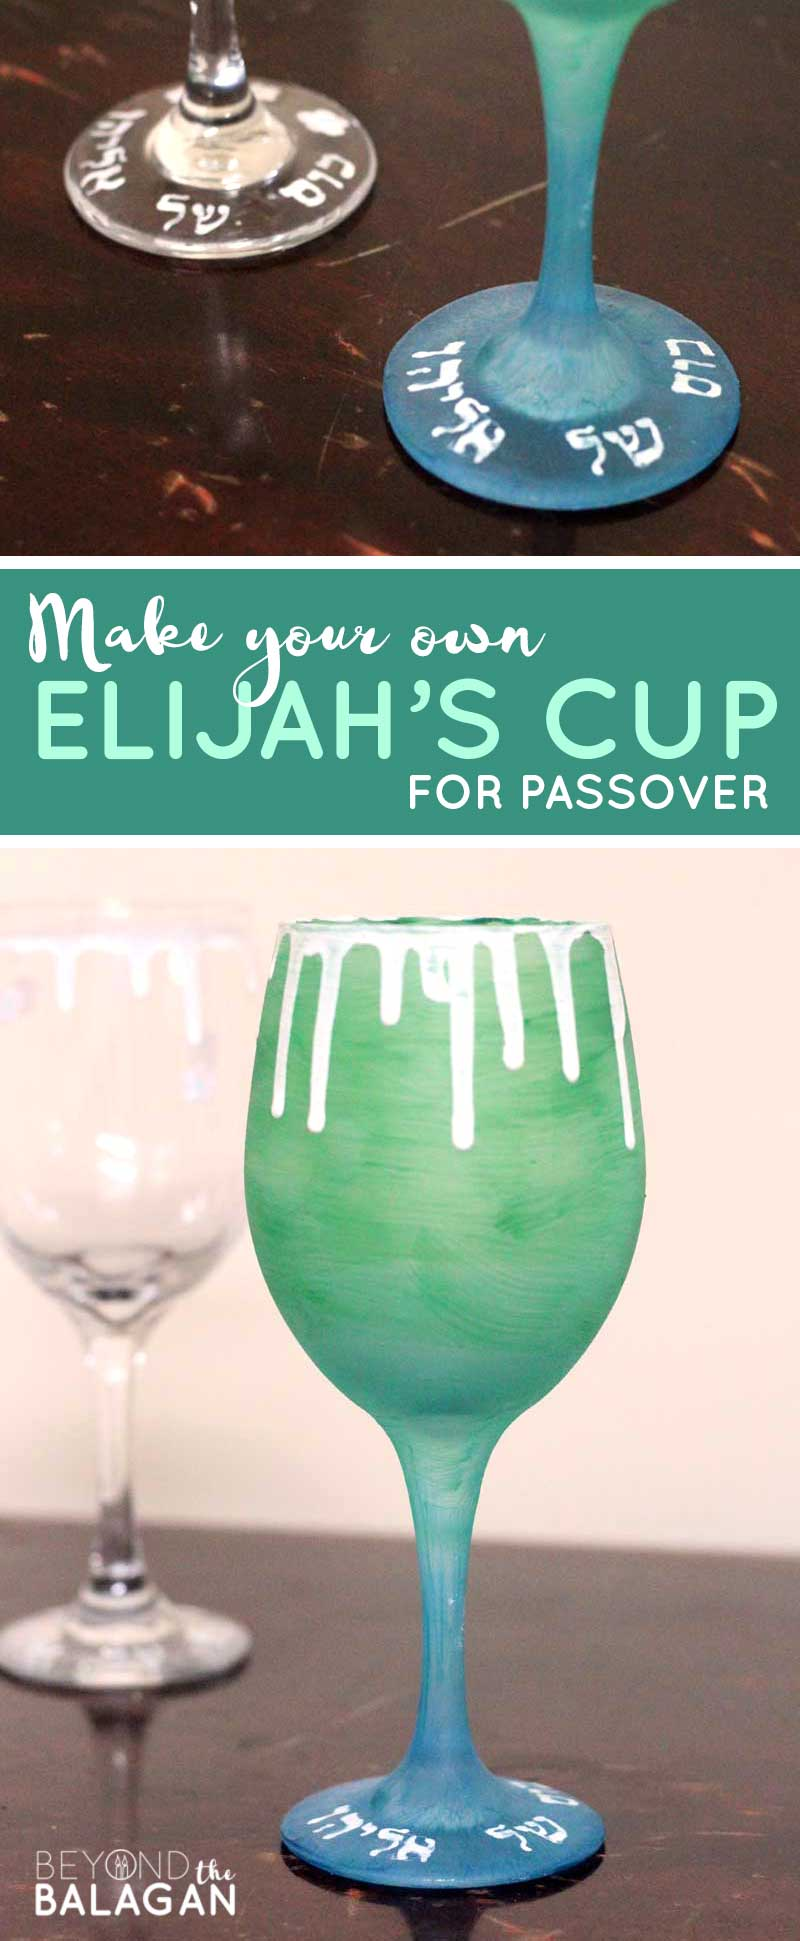 Make this fun Pesach craft - a DIY kos shel eliyahu. This Elijah's cup is a fun sea glass painting project with a unique twist and is the perfect Passover crafts for adults and kids. This cool idea for the passover seder upgrades the cup of elija the prophet. #pesach #passover #jewishholidays